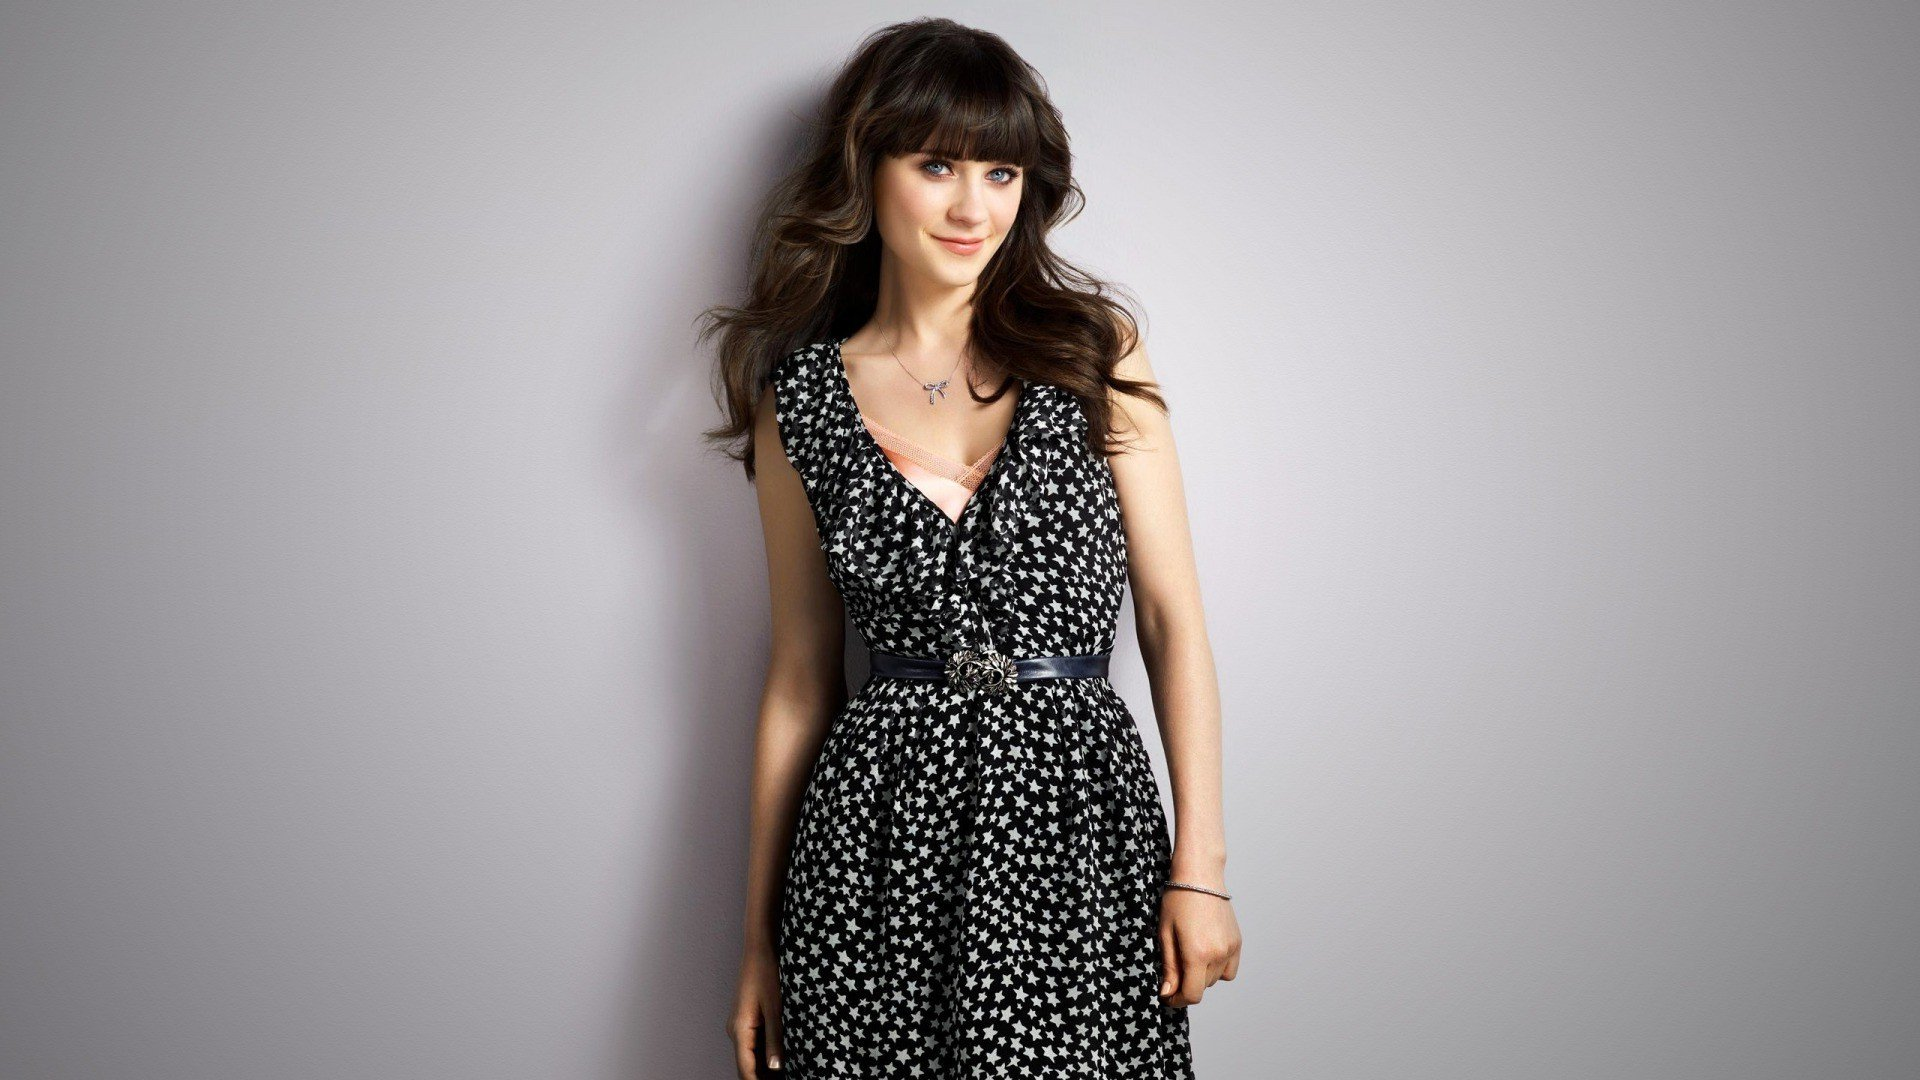 zooey deschanel desktop wallpaper 957